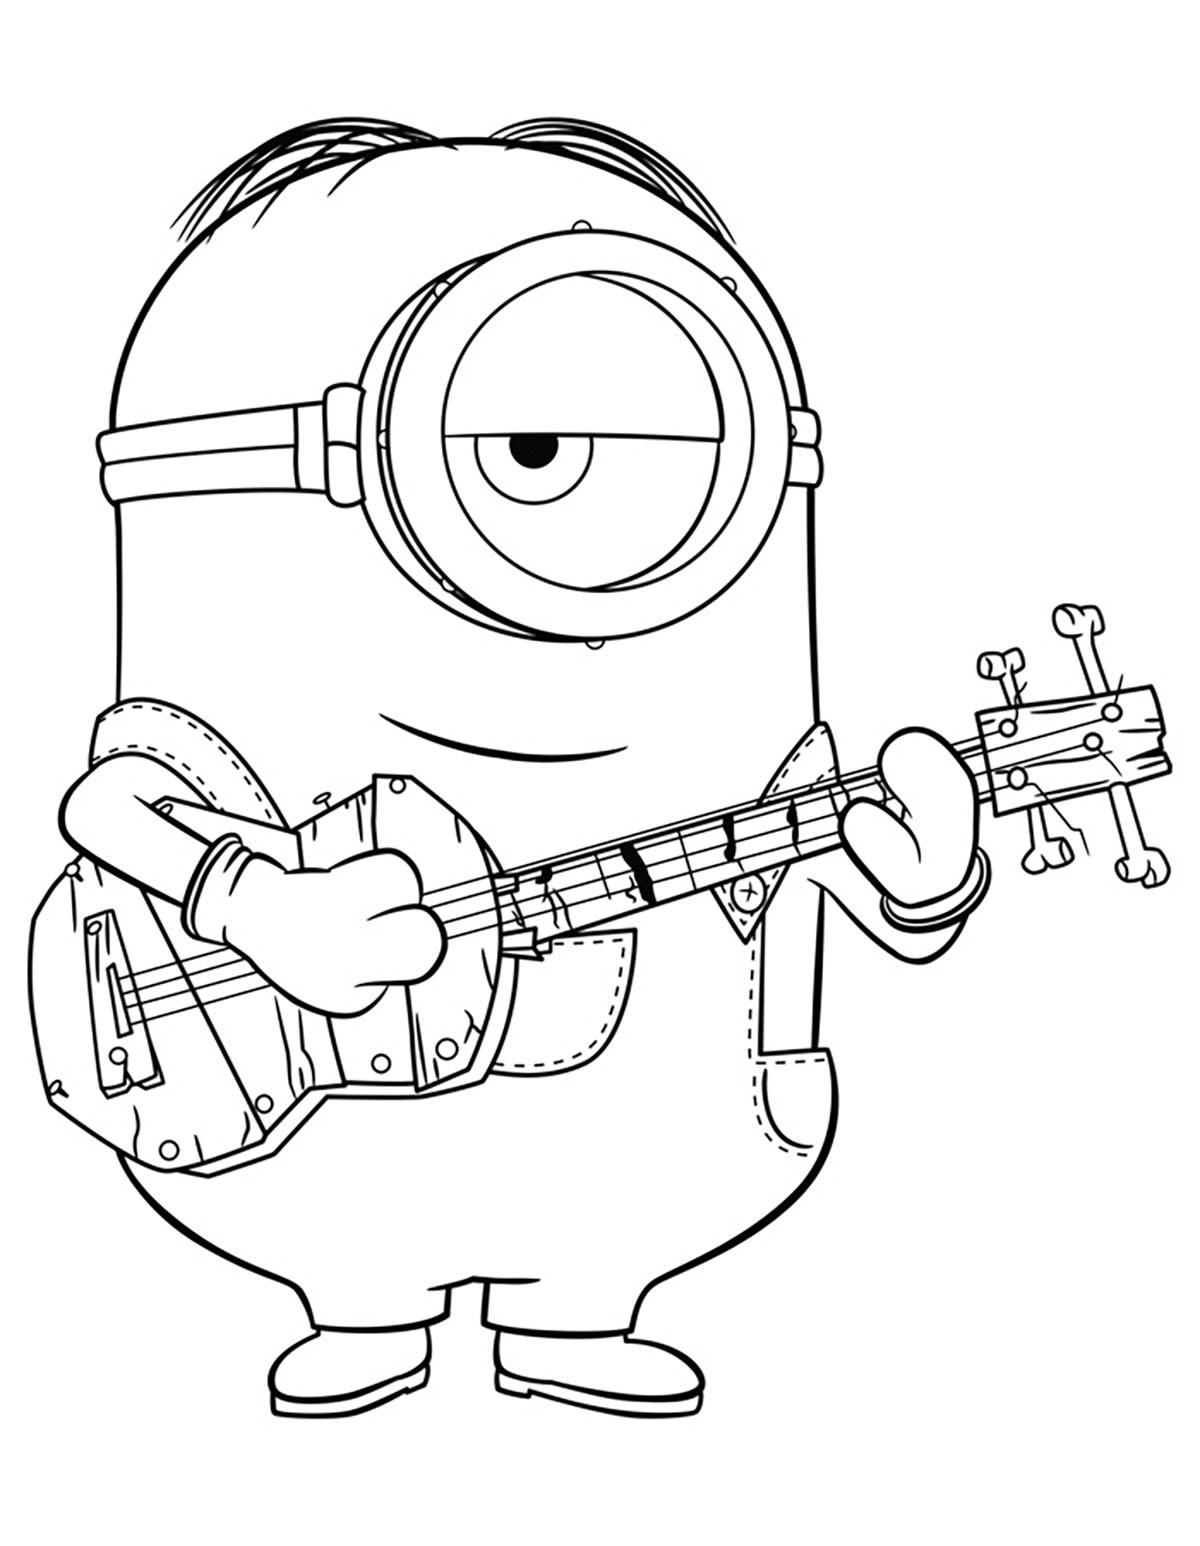 coloring minion pages despicable me 2 minions party time coloring page coloring minion pages